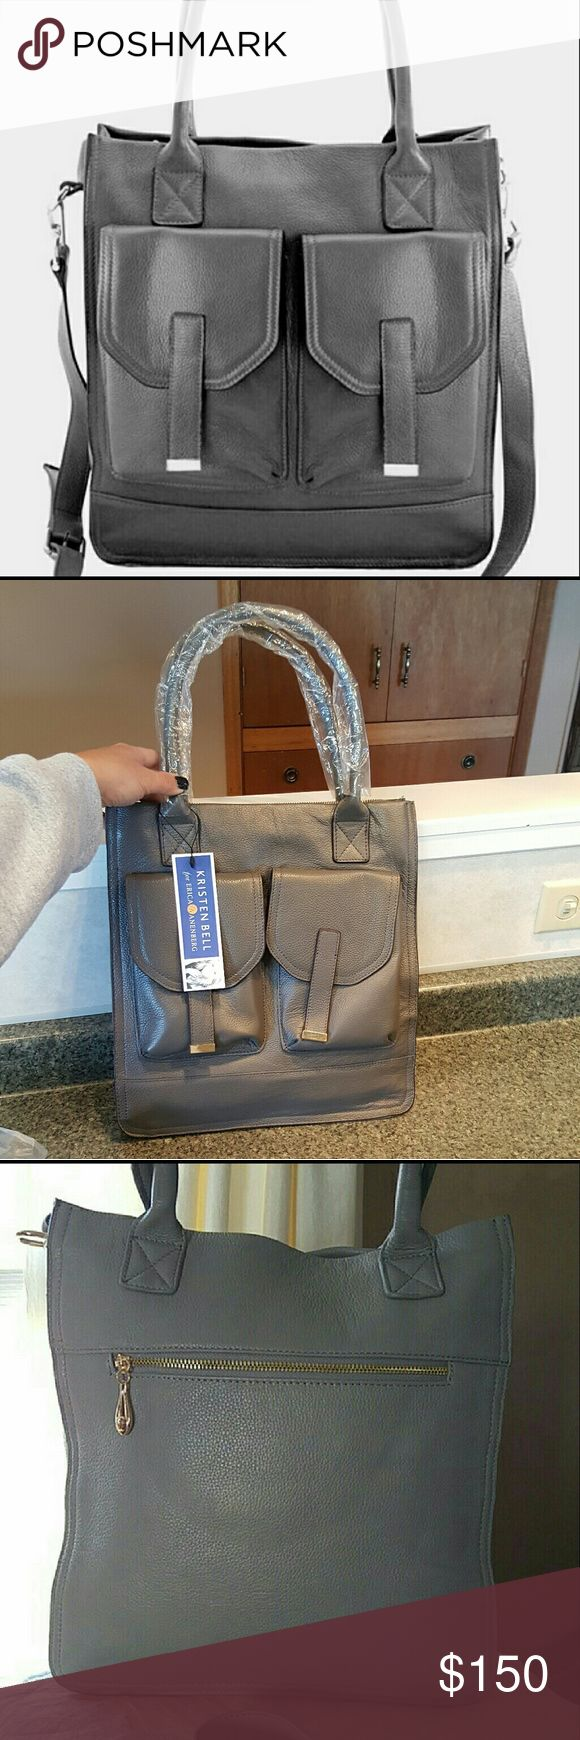 """NWT Kristen Bell for Erica Anenberg Tote Grey leather Madison Messenger Bag. Adjustable and detachable strap. Large. Also Holds up to 13 inch lap top. Bag Height 15"""" Bag Length 10"""" Strap Drop 8.5"""" Genuine leather exterior, suede interior Bags"""